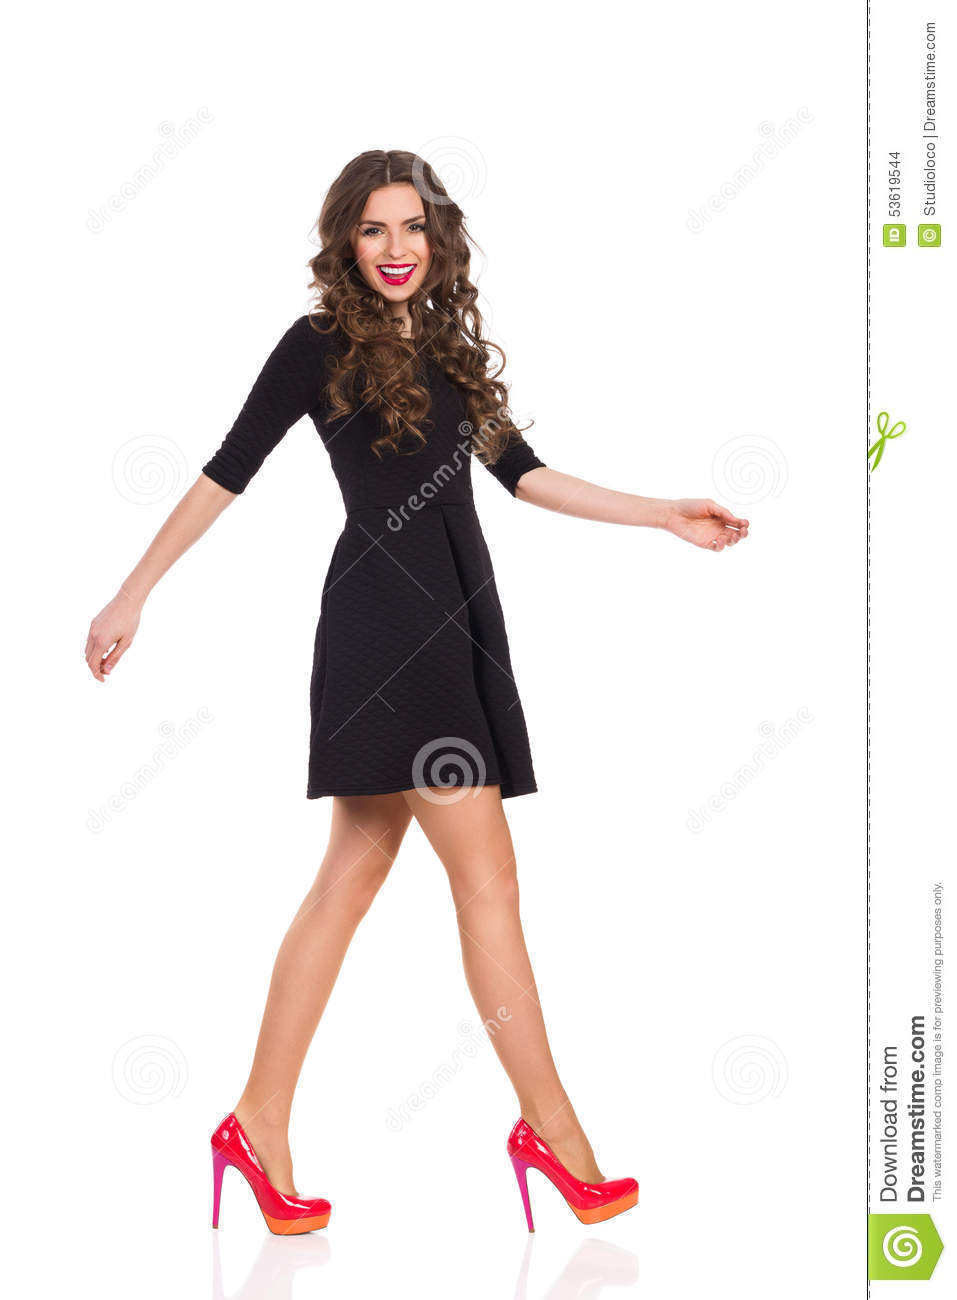 Fashion Model Walking Royalty Free Stock Images - Image ... |Fashion Model Walking